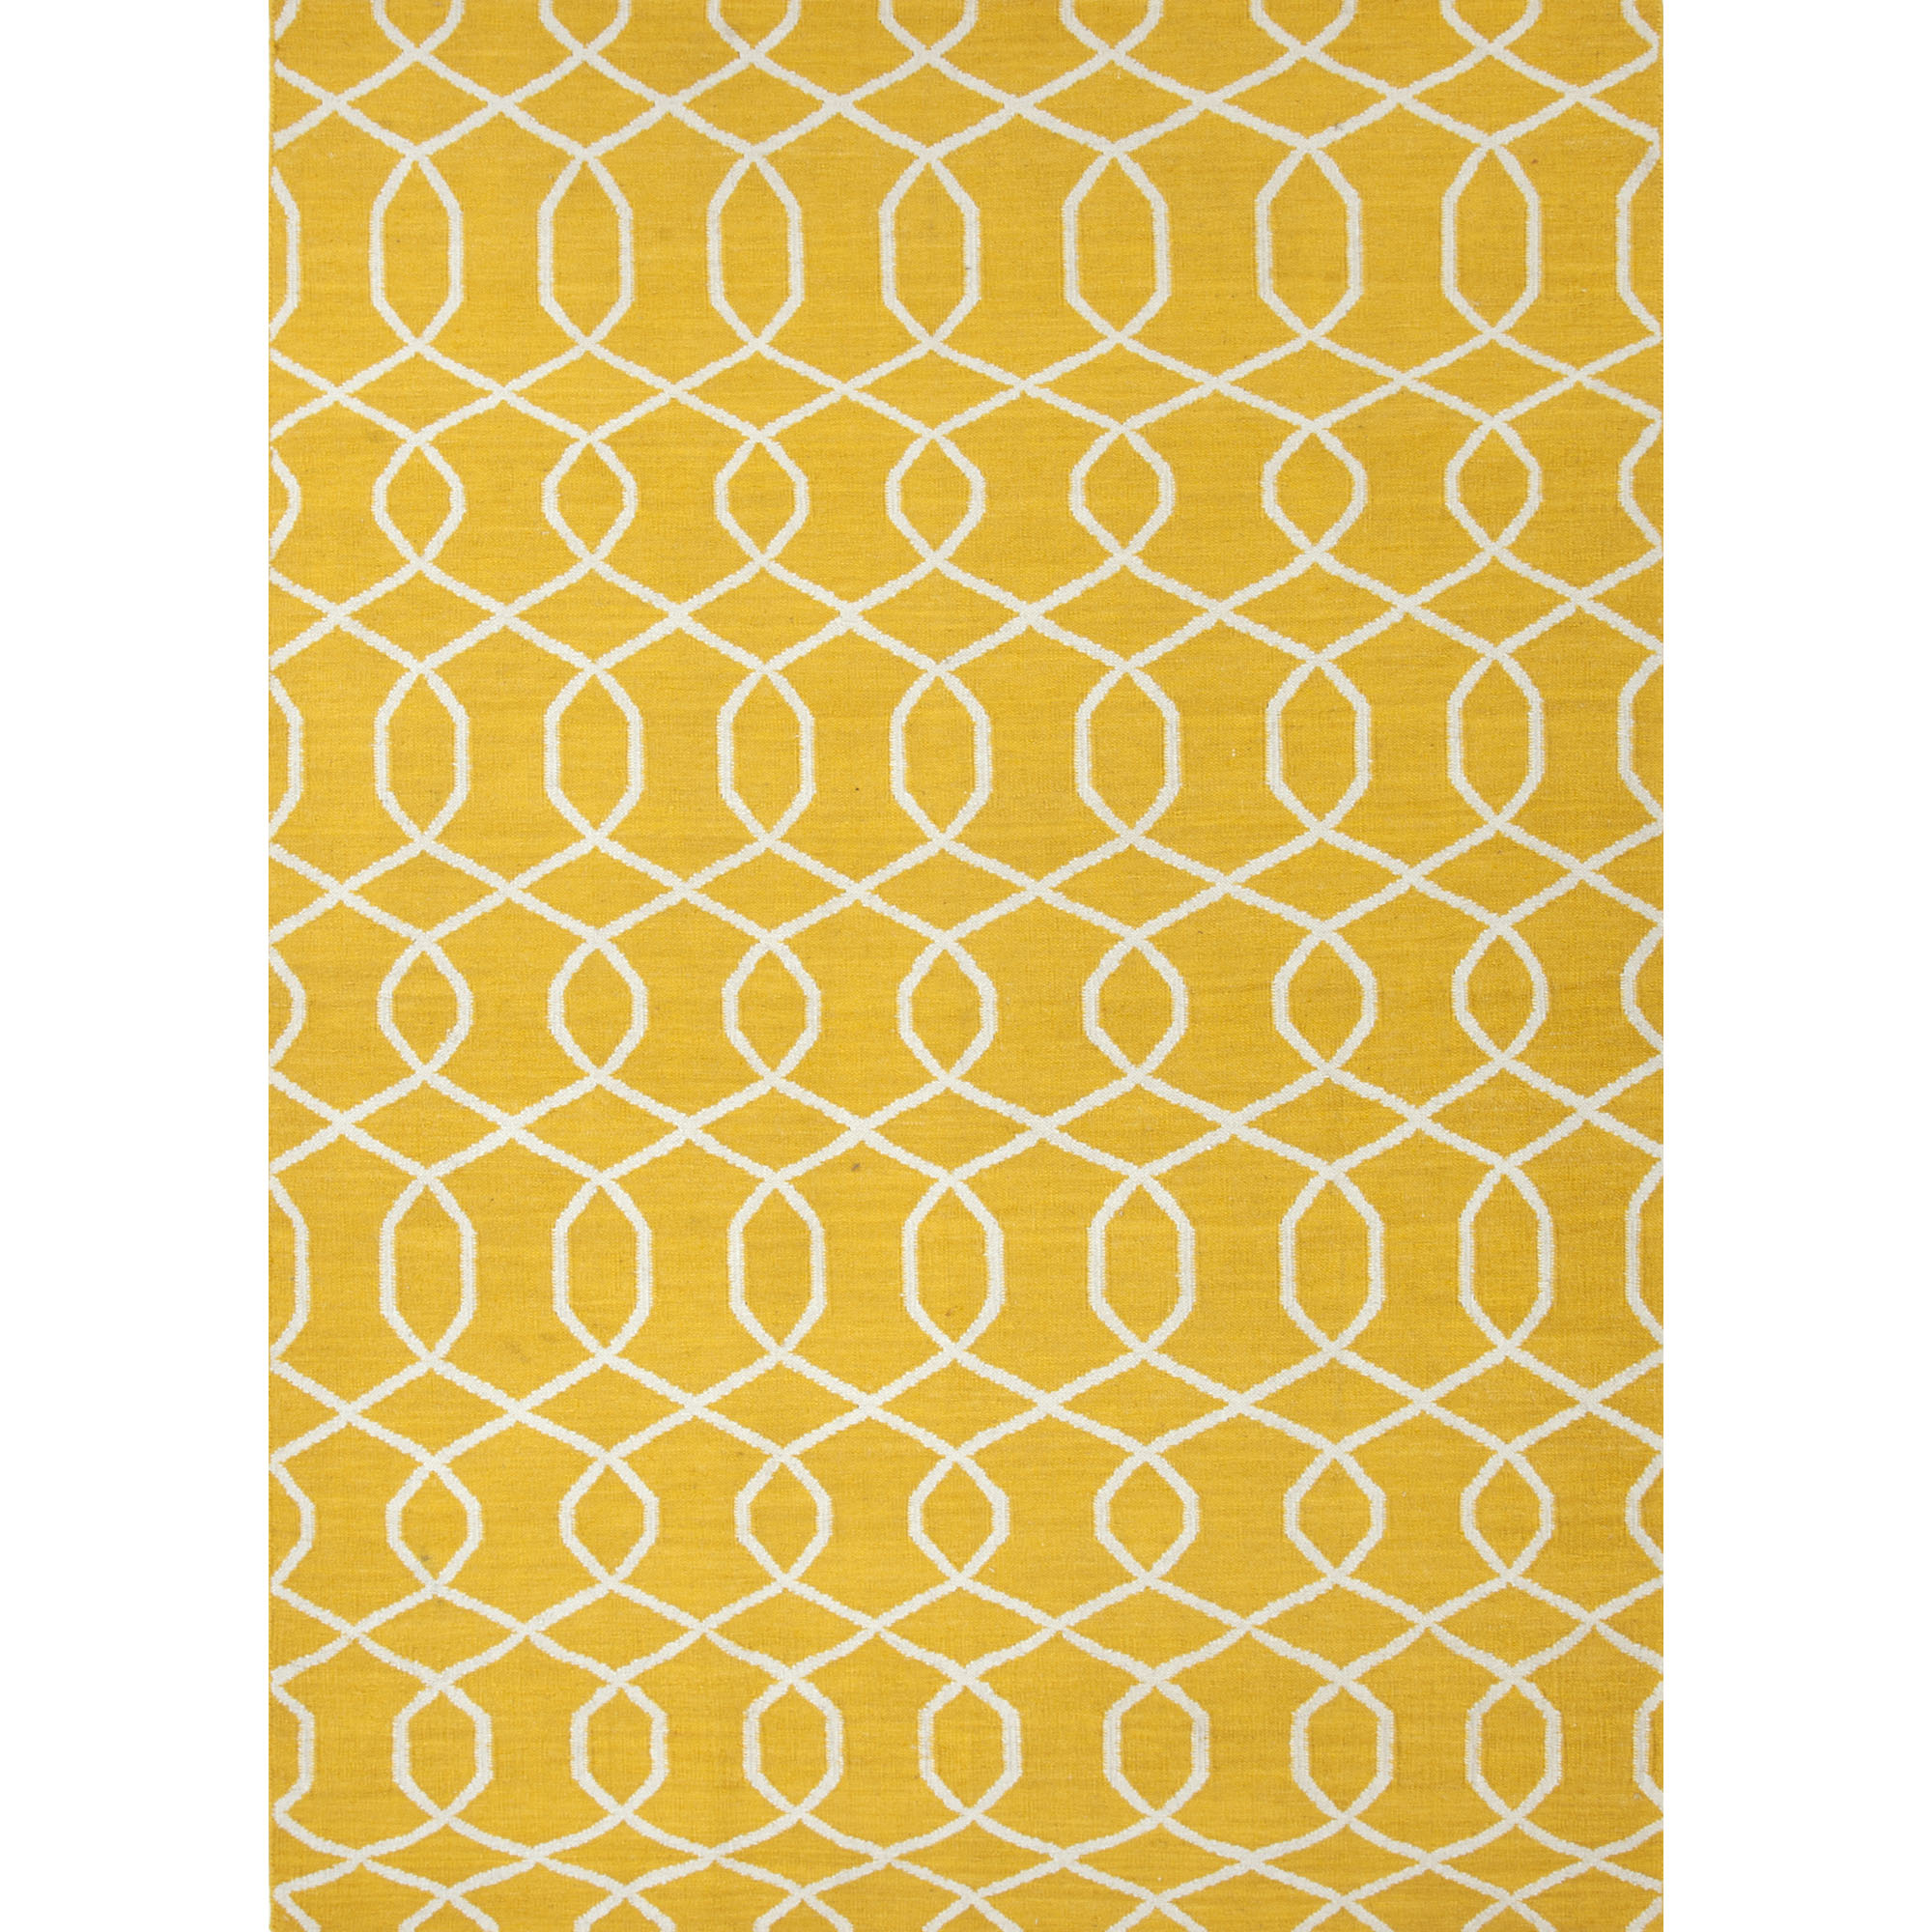 JAIPUR Rugs Urban Bungalow 8 x 10 Rug - Item Number: RUG102741